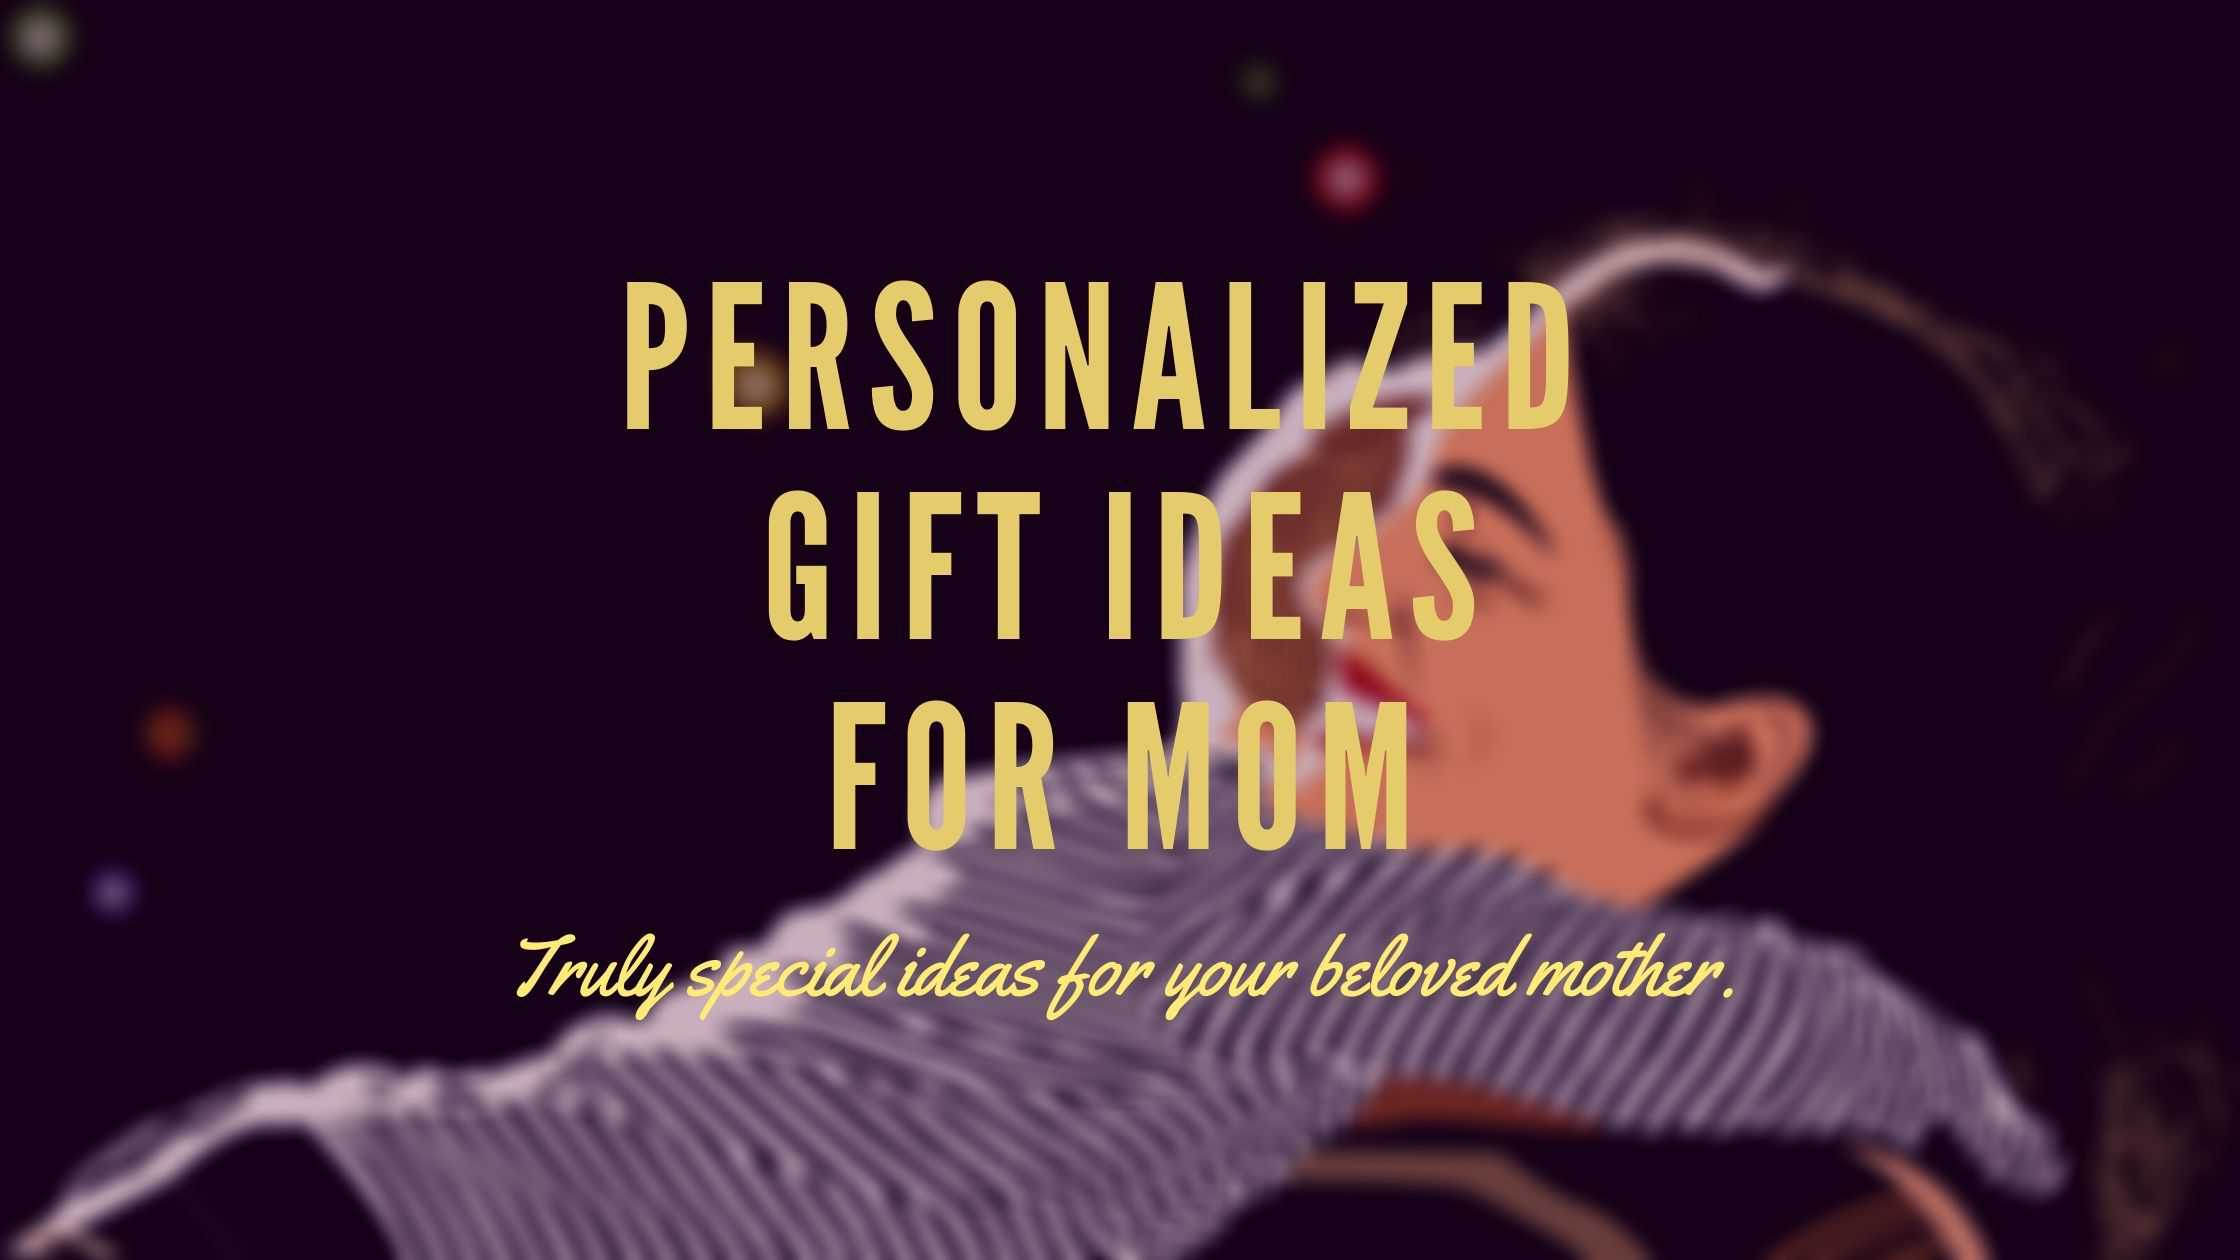 21 Marvelous Personalized Gift Ideas For Moms (2021)